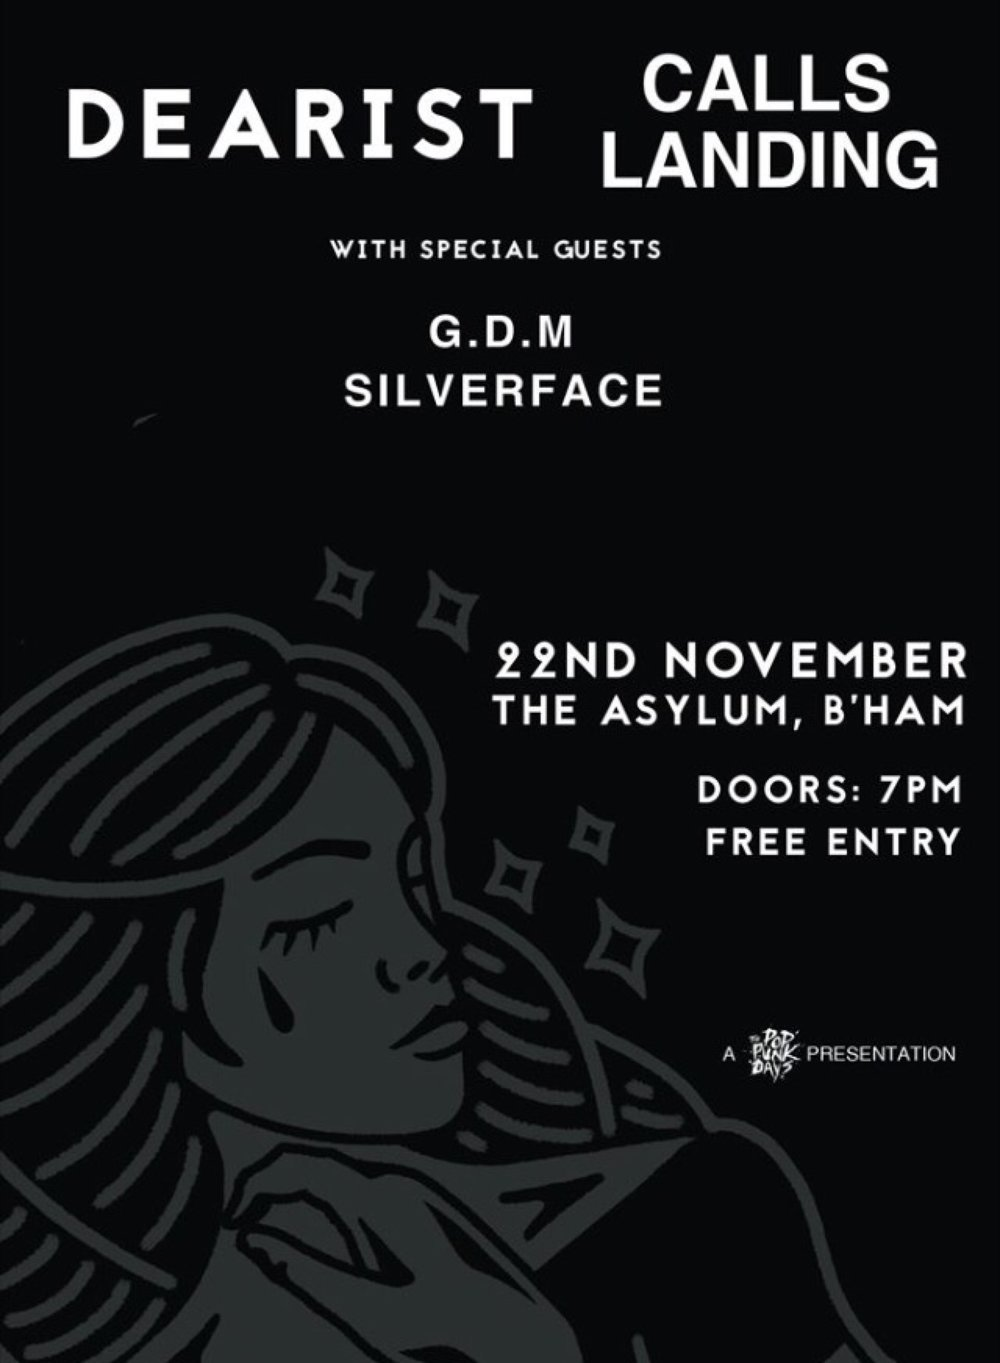 Dearest album launch show. W/ Calls Landing + Silverface